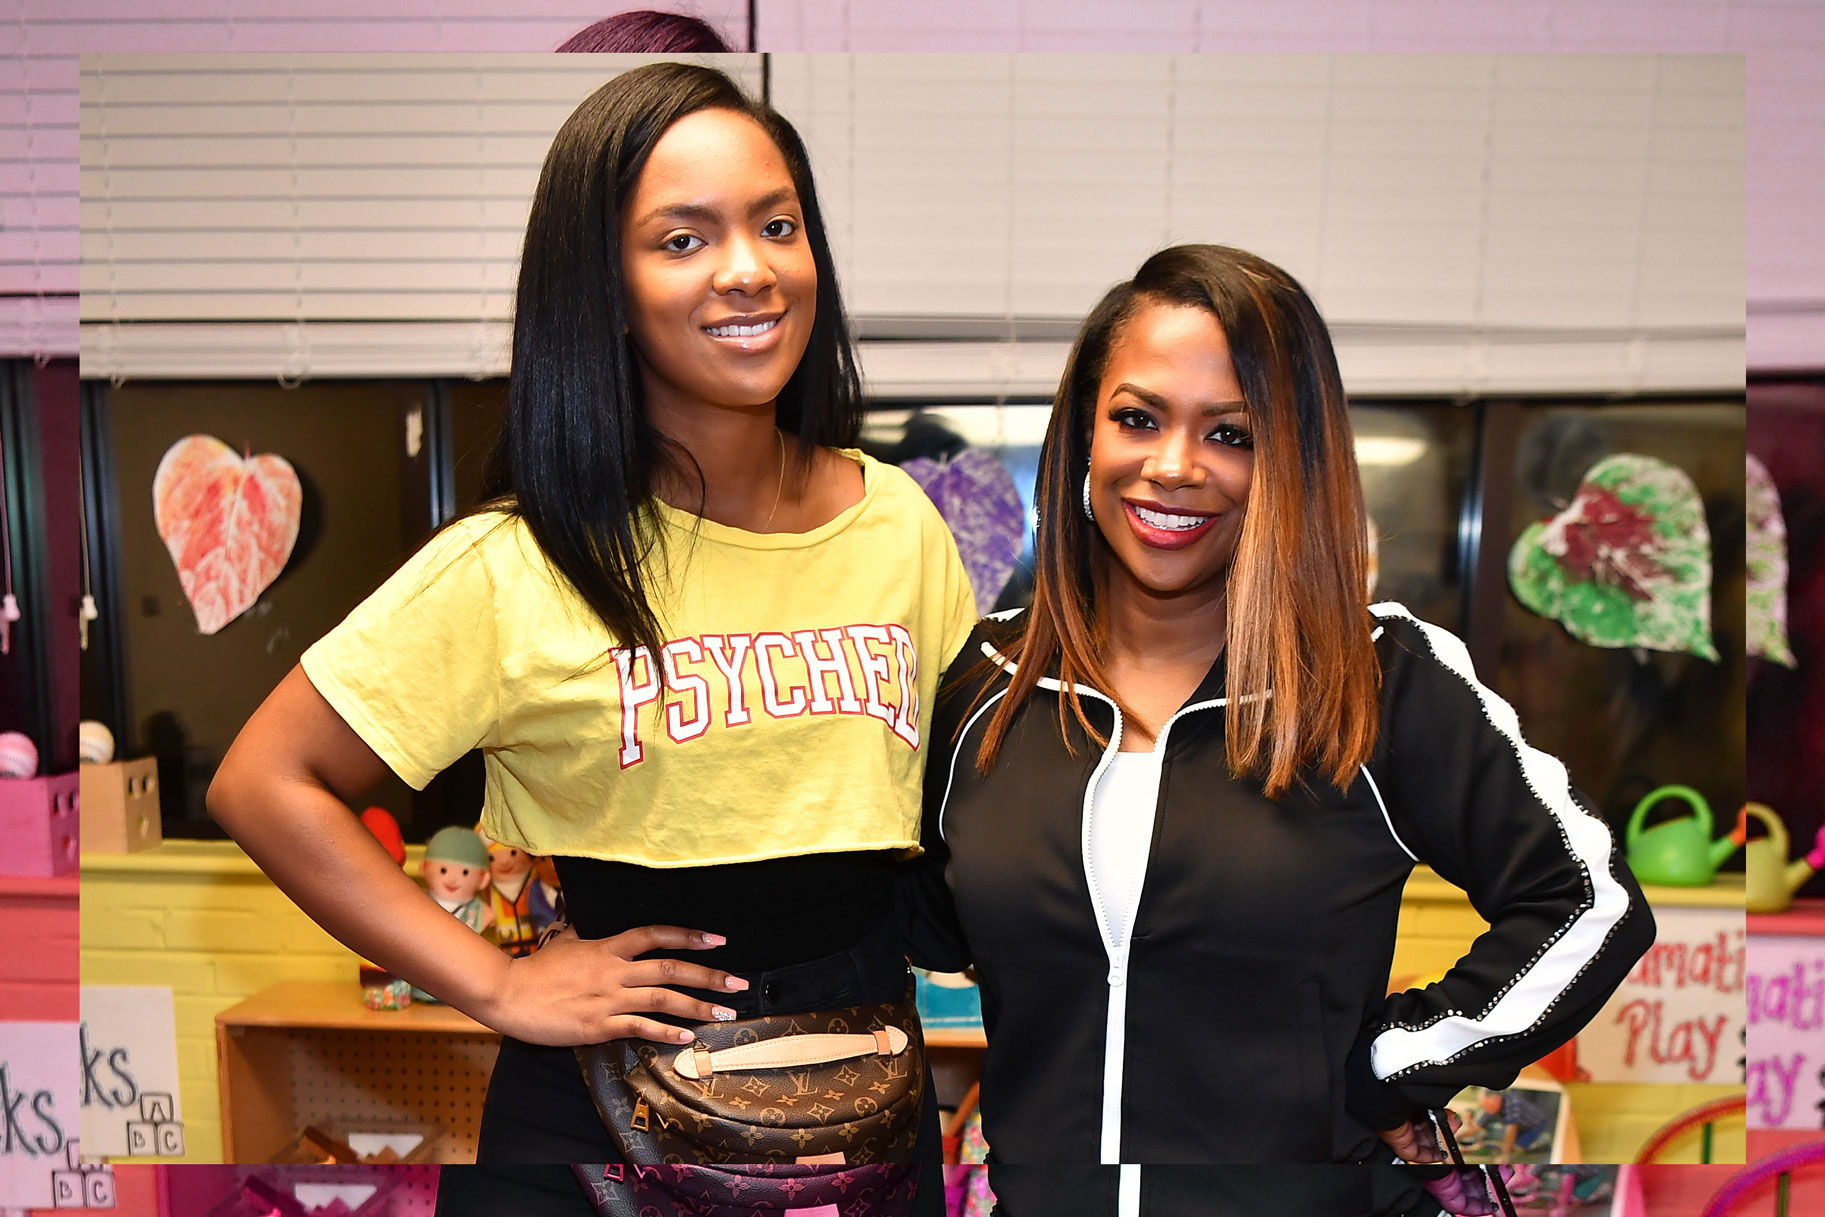 Kandi Burruss Brings Her Daughter Riley Burruss To The BeautyCon Event - See The Clip